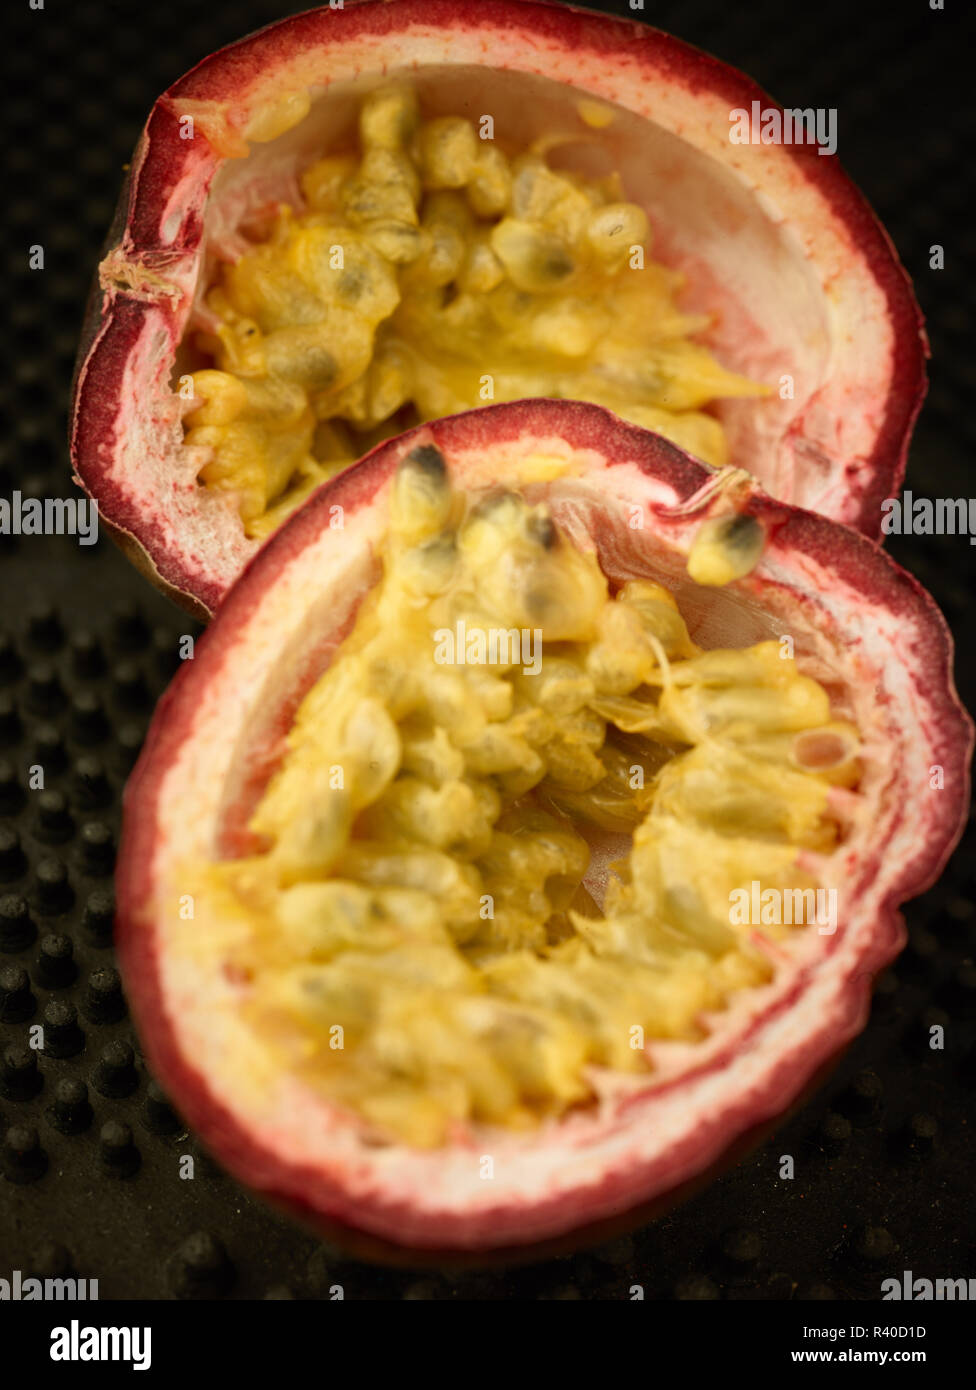 Passionfruit halves showing the brightly coloured seeds, close up food photograph against a black background - Stock Image